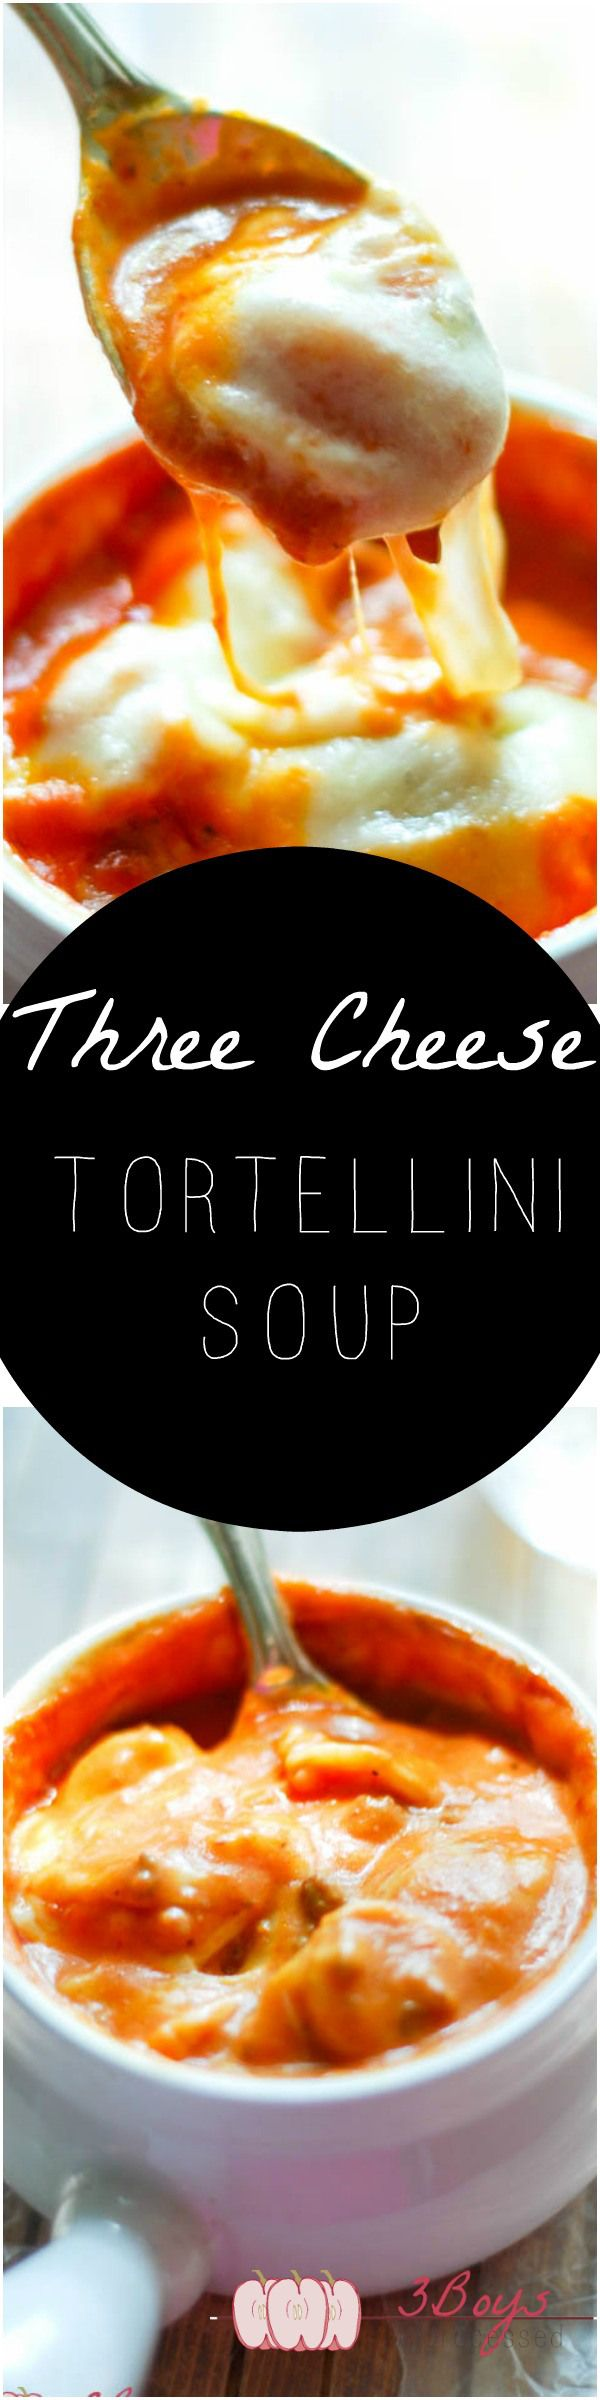 Three Cheese Tortellini Soup    A delicious blend of ground beef, cheese, and tortellini smothered in a thick and creamy tomato soup. The ultimate comfort soup!    www.3boysunprocessed.com